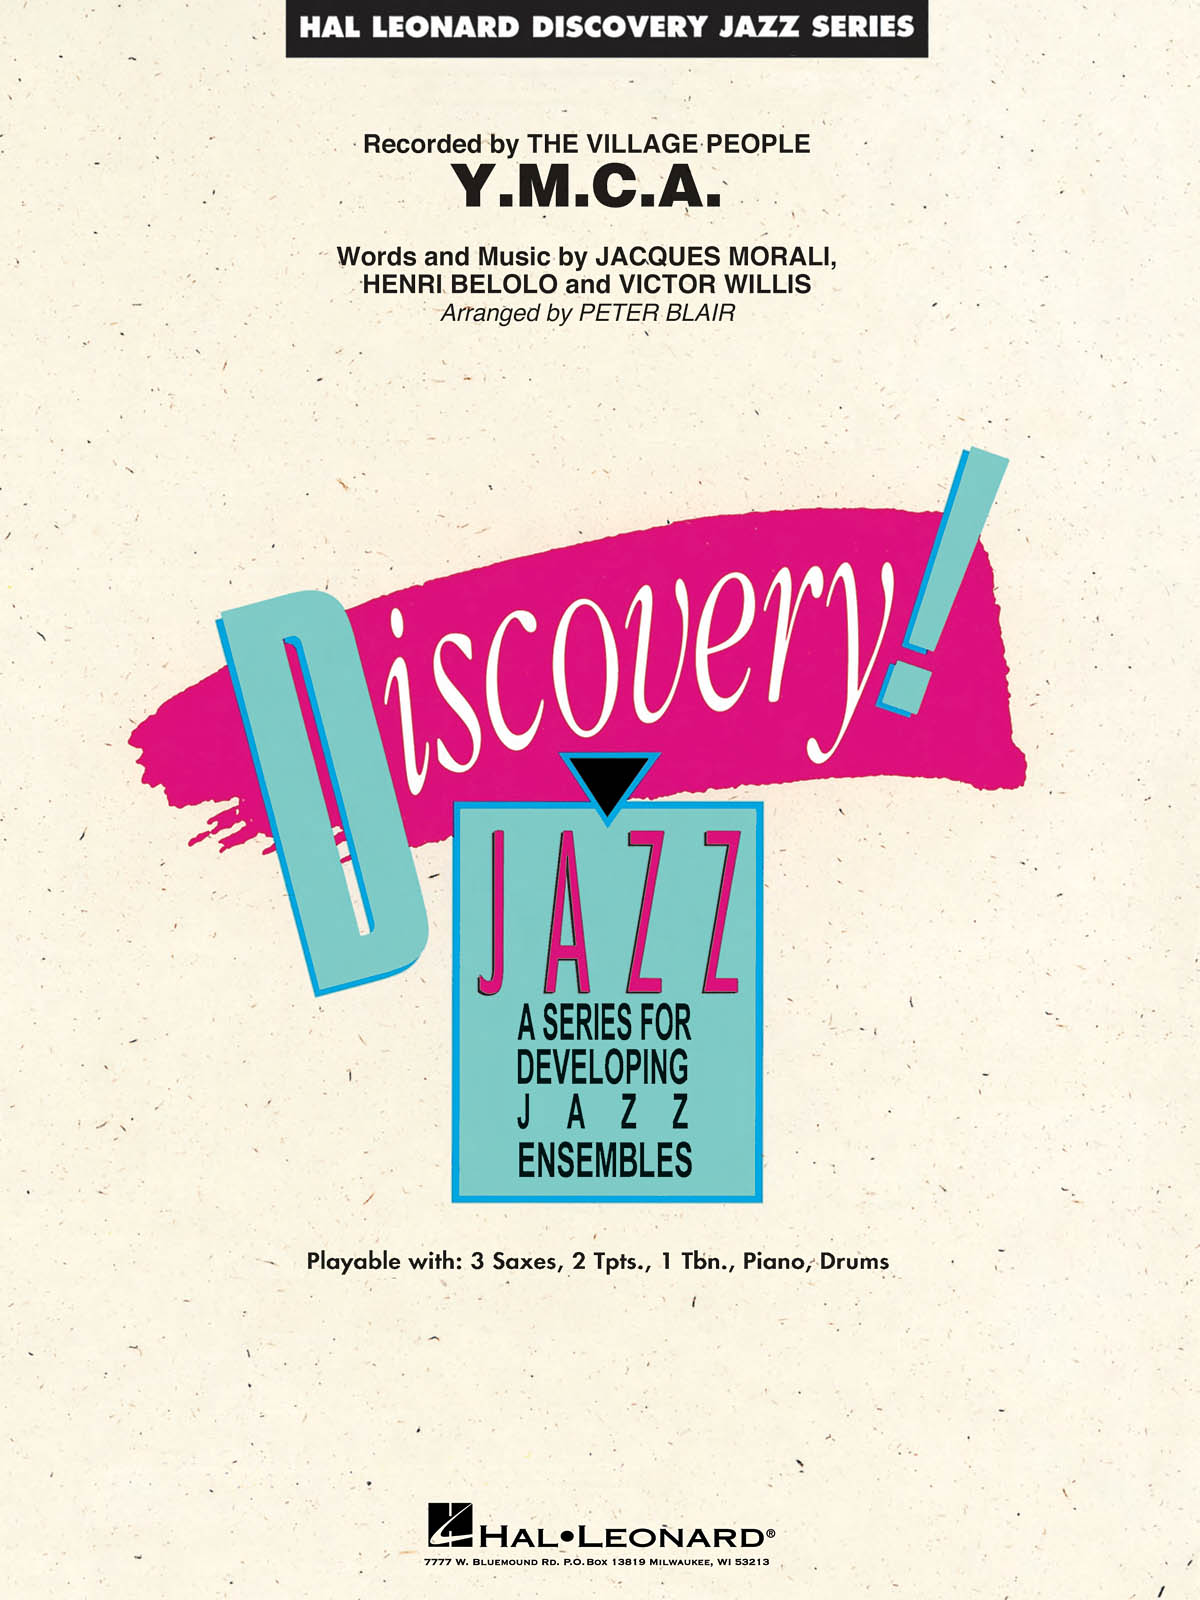 Y.M.C.A.: Discovery Jazz